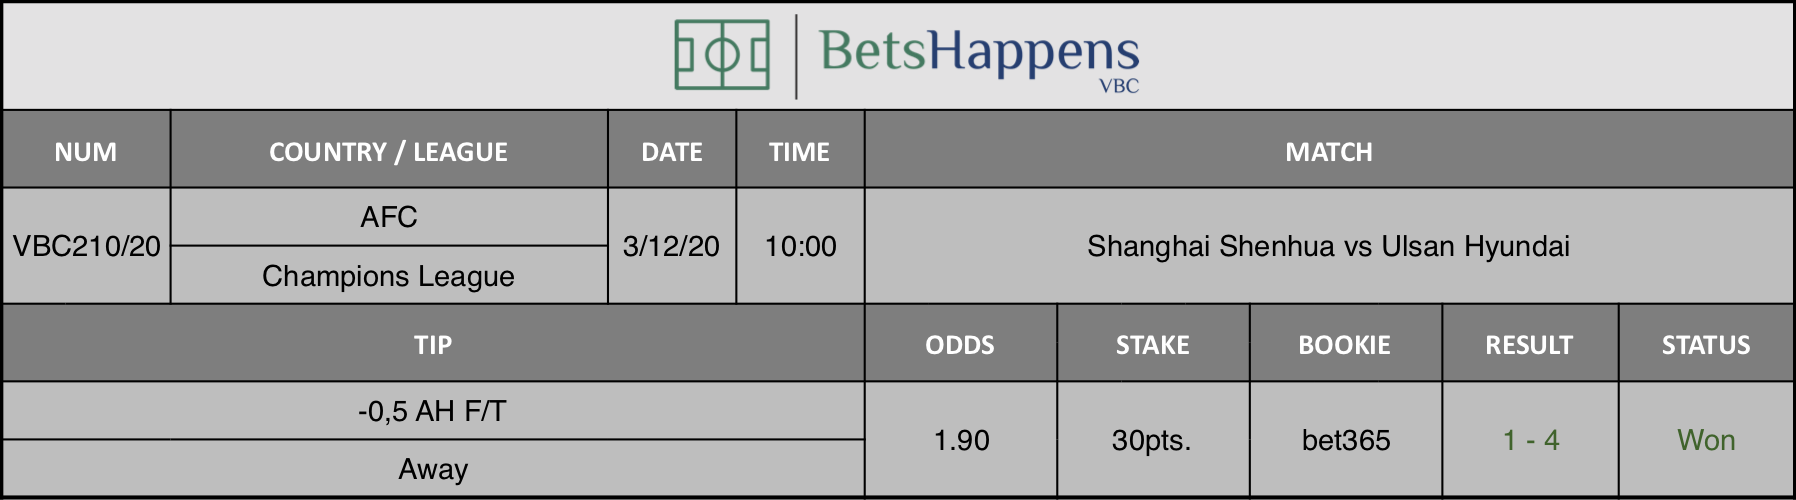 Results of our tip for the Shanghai Shenhua vs Ulsan Hyundai match where -0,5 AH F/T Away is recommended.